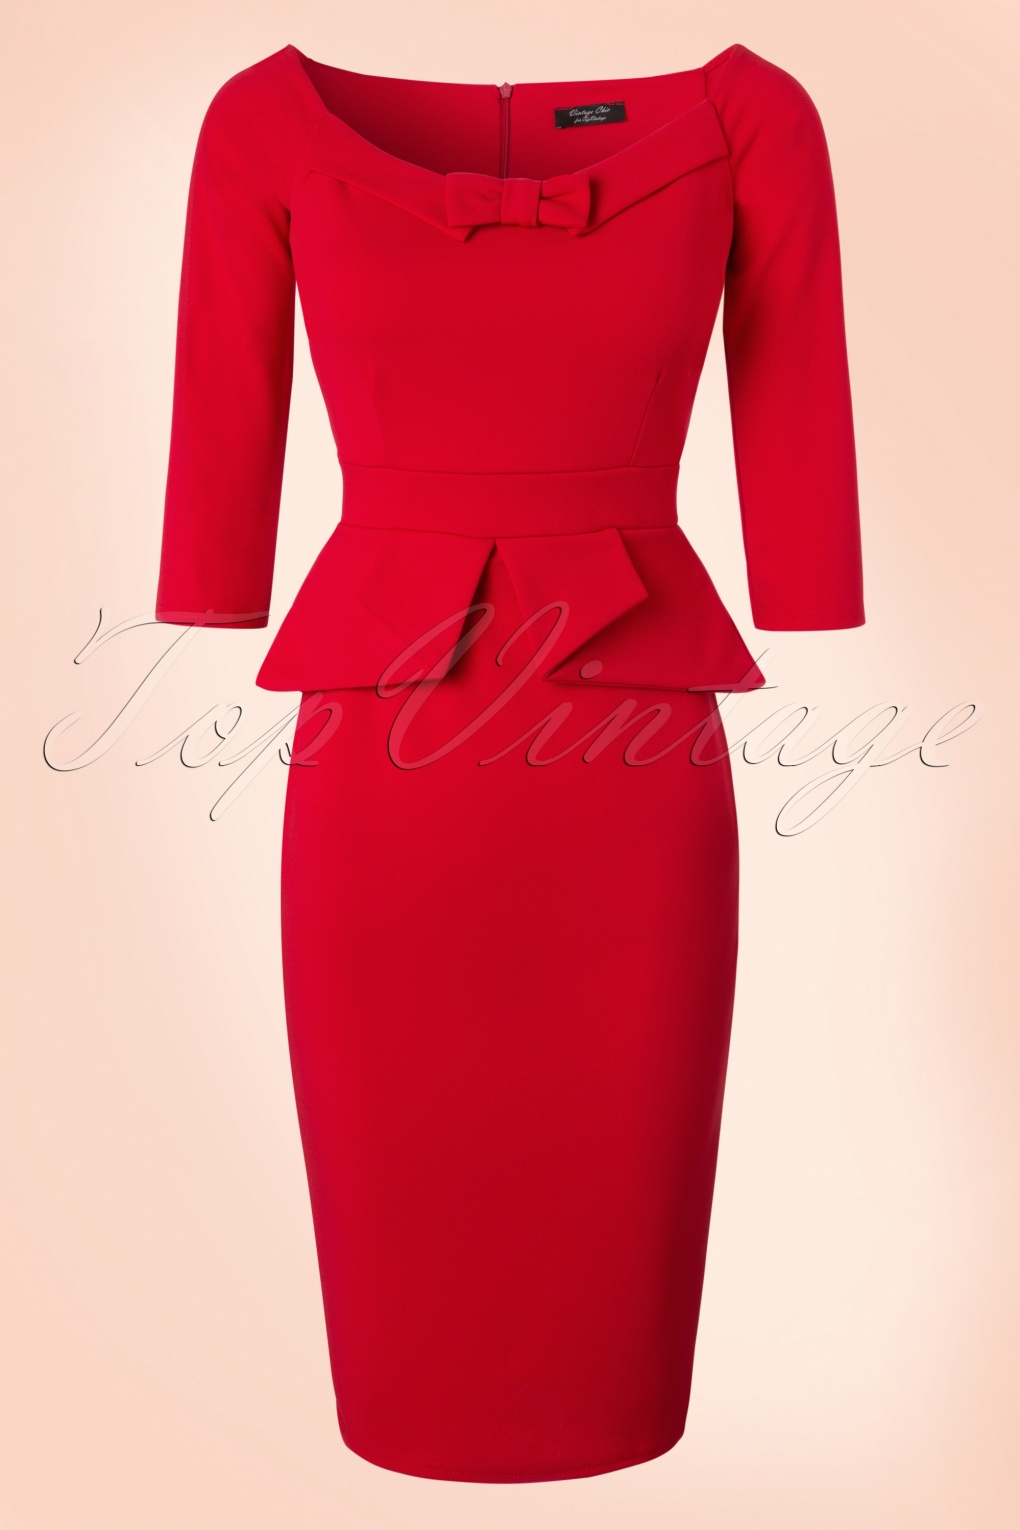 Wiggle Dresses | Pencil Dresses 50s Paloma Peplum Pencil Dress in Lipstick Red £50.60 AT vintagedancer.com